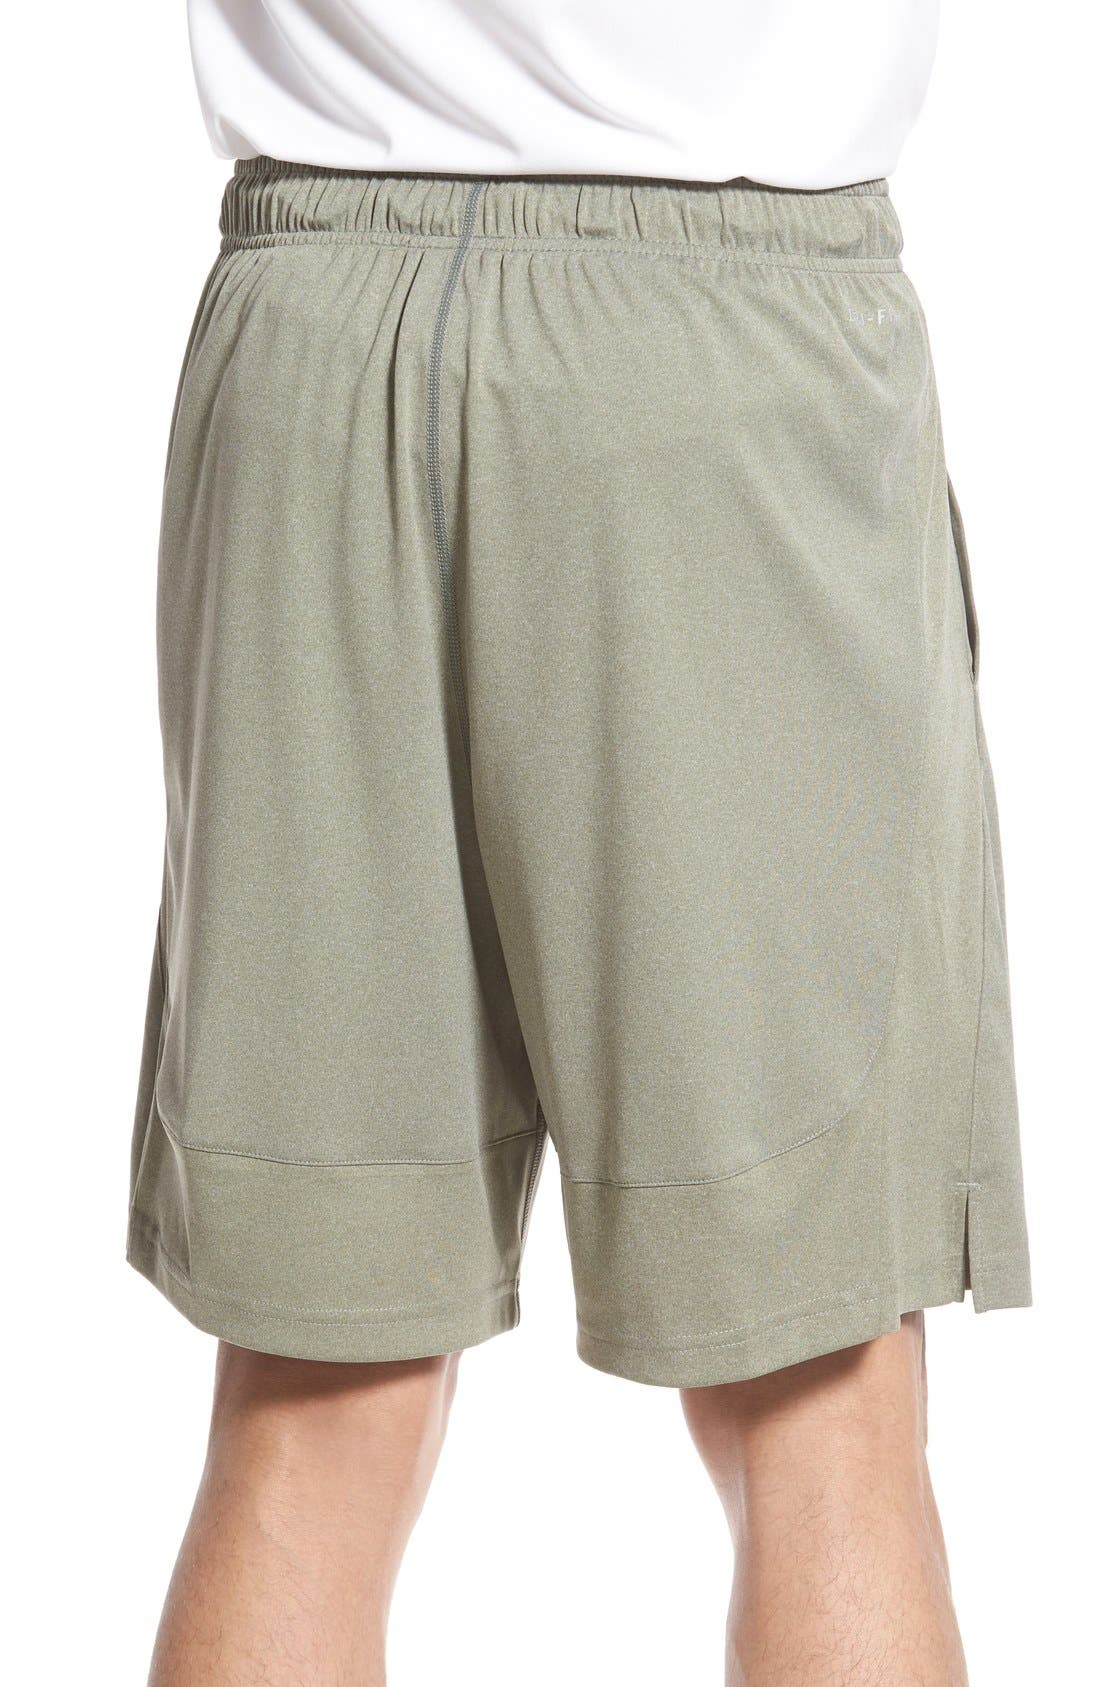 'Fly' Dri-FIT Training Shorts,                             Alternate thumbnail 66, color,